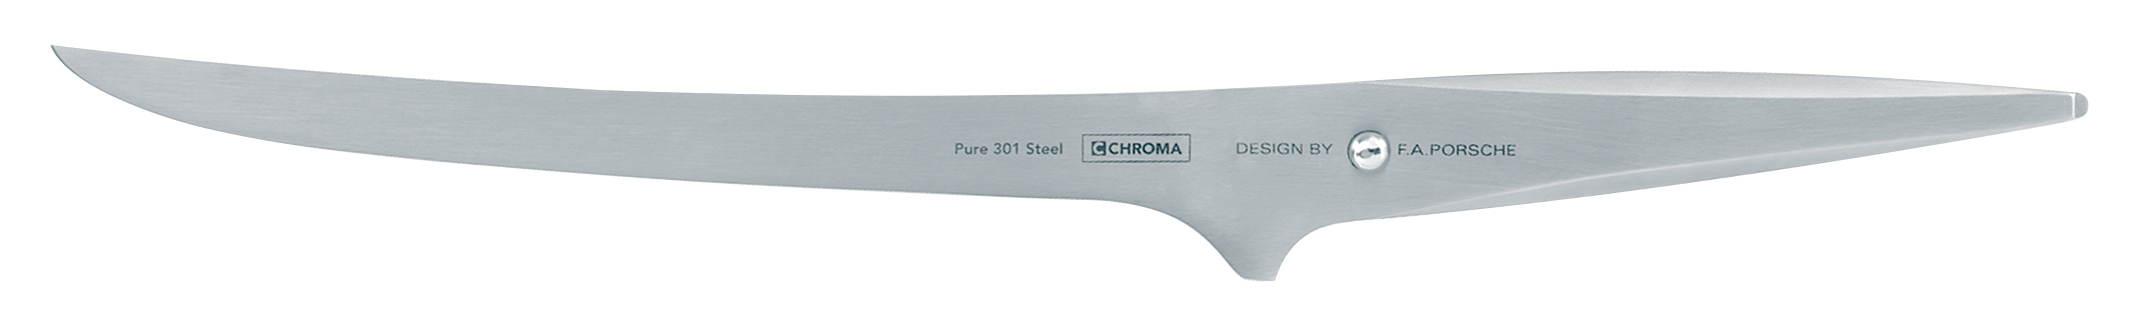 Chroma Type 301 Filleting Knife - Thin, Strong & Flexible 7-3/4